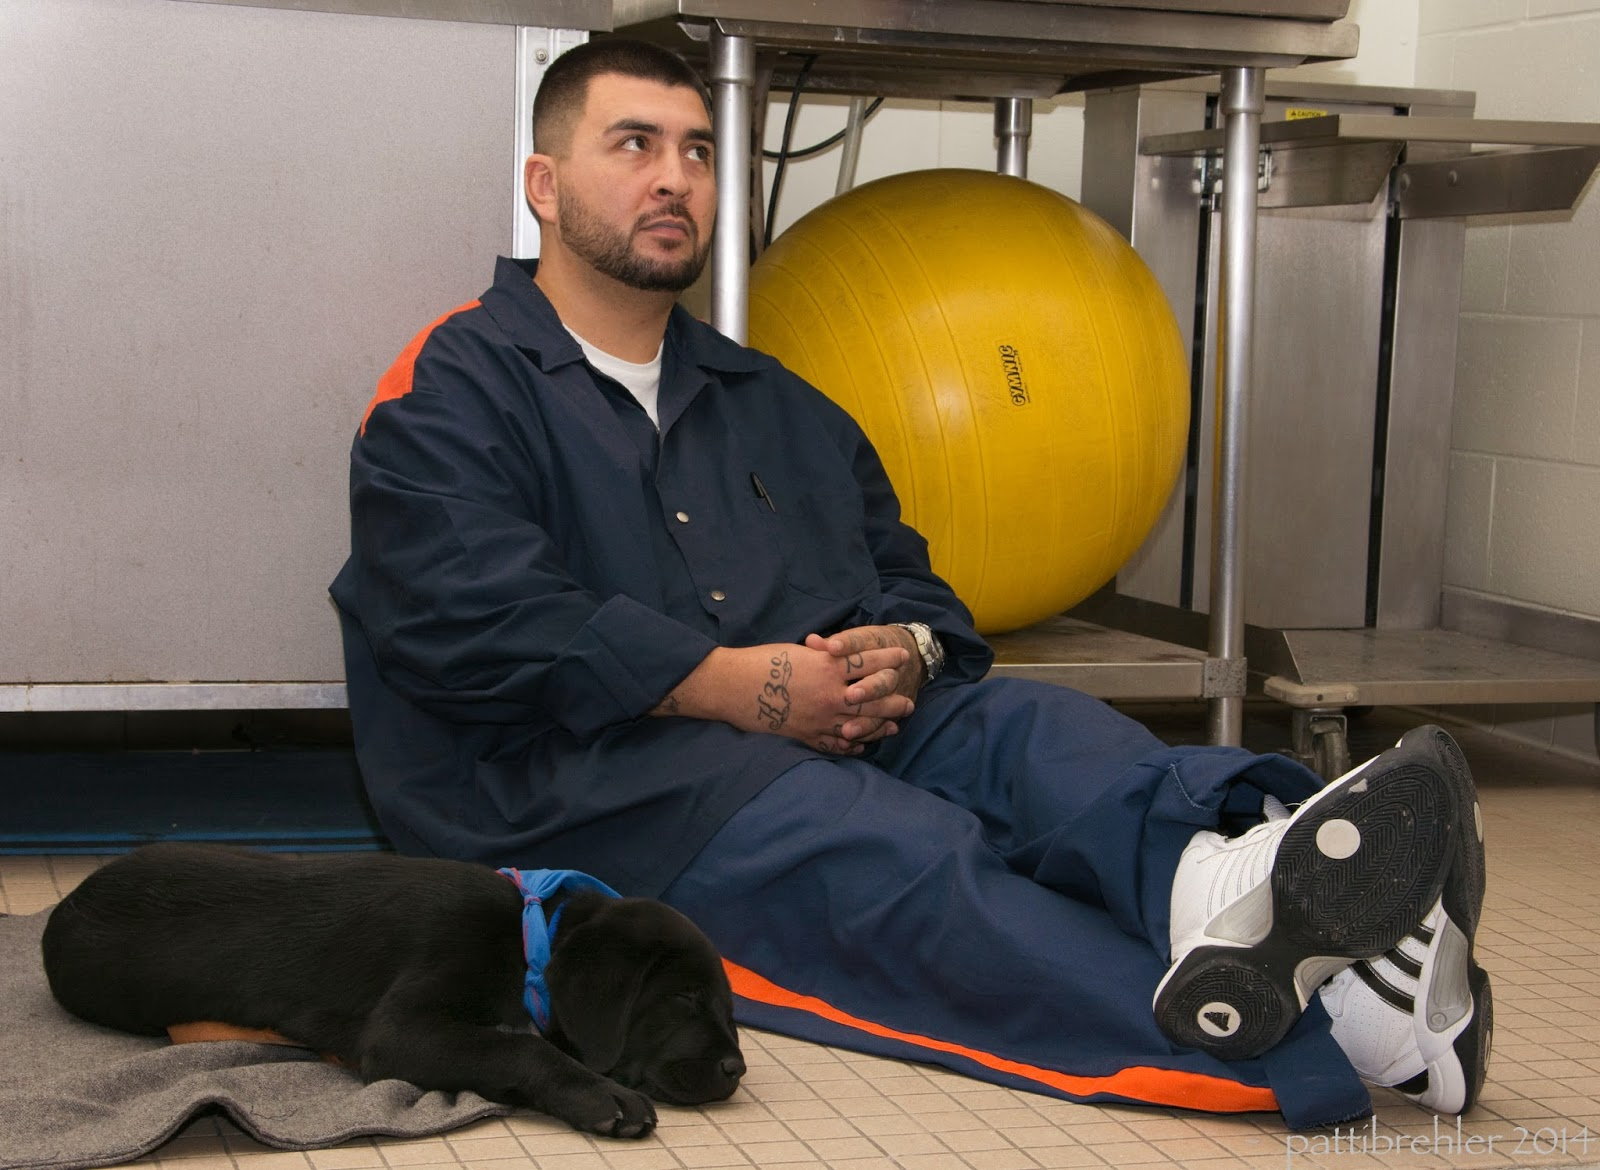 A man dressed in the prison blue uniform is sitting on the floor with his legs extended out in front of him. His hands are floded iin his lap. He is leaning against a metal cart which has a large yellow ball on it. A small black lab puppy is lying tot he left on a grey mat. He is wearing a blue bandana.